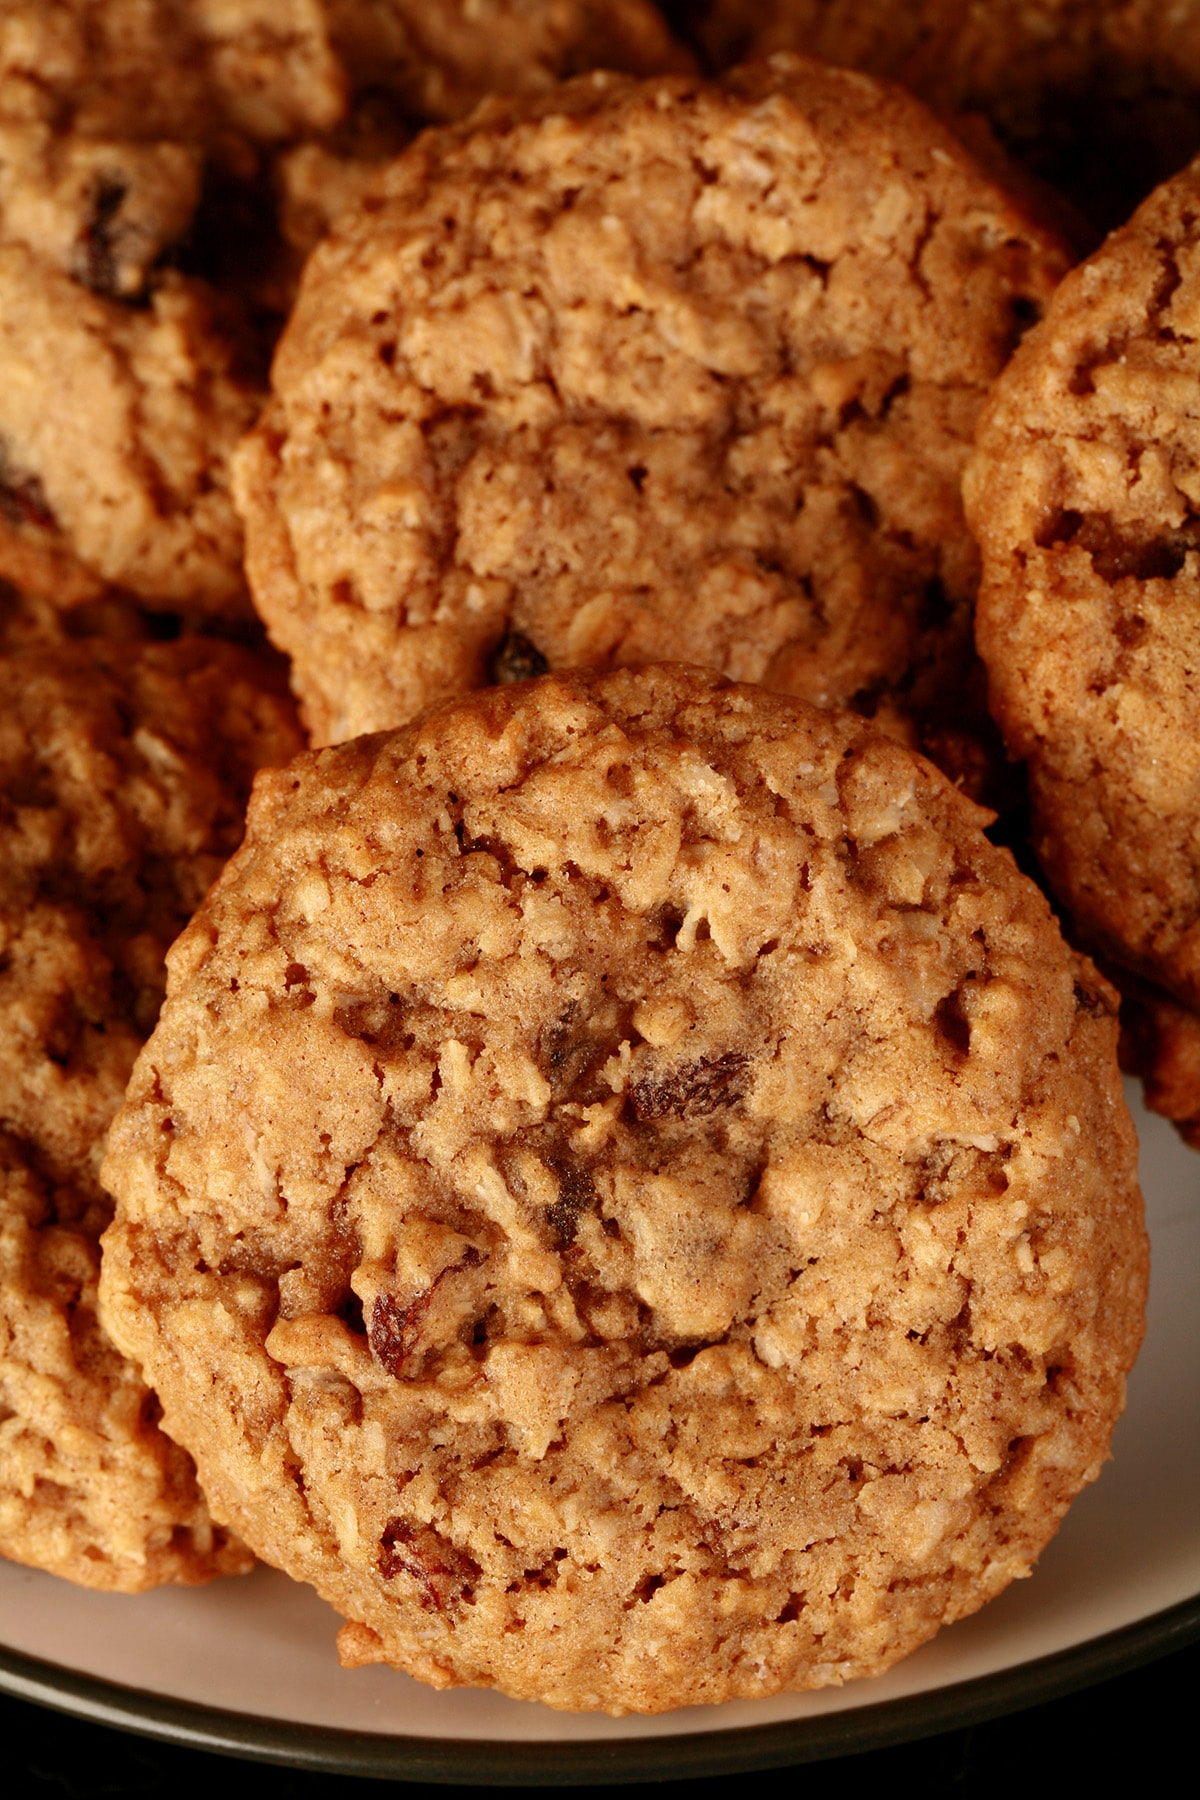 A close up view of a plate of spiced oatmeal raisin cookies.